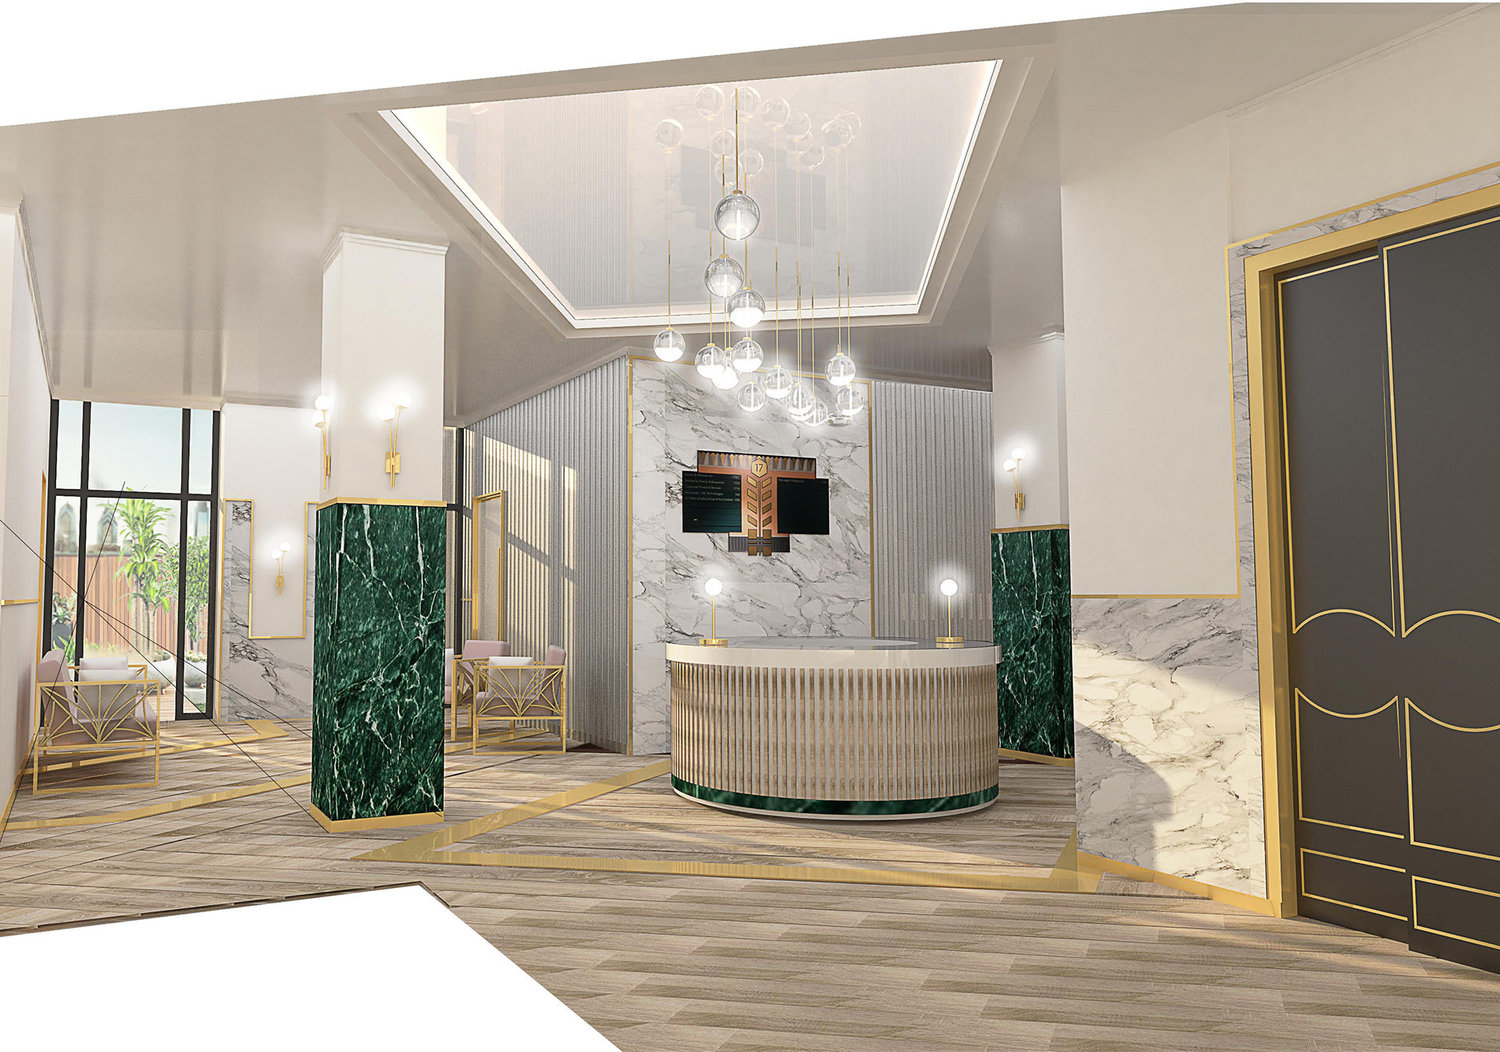 open reception area with green and white marbling